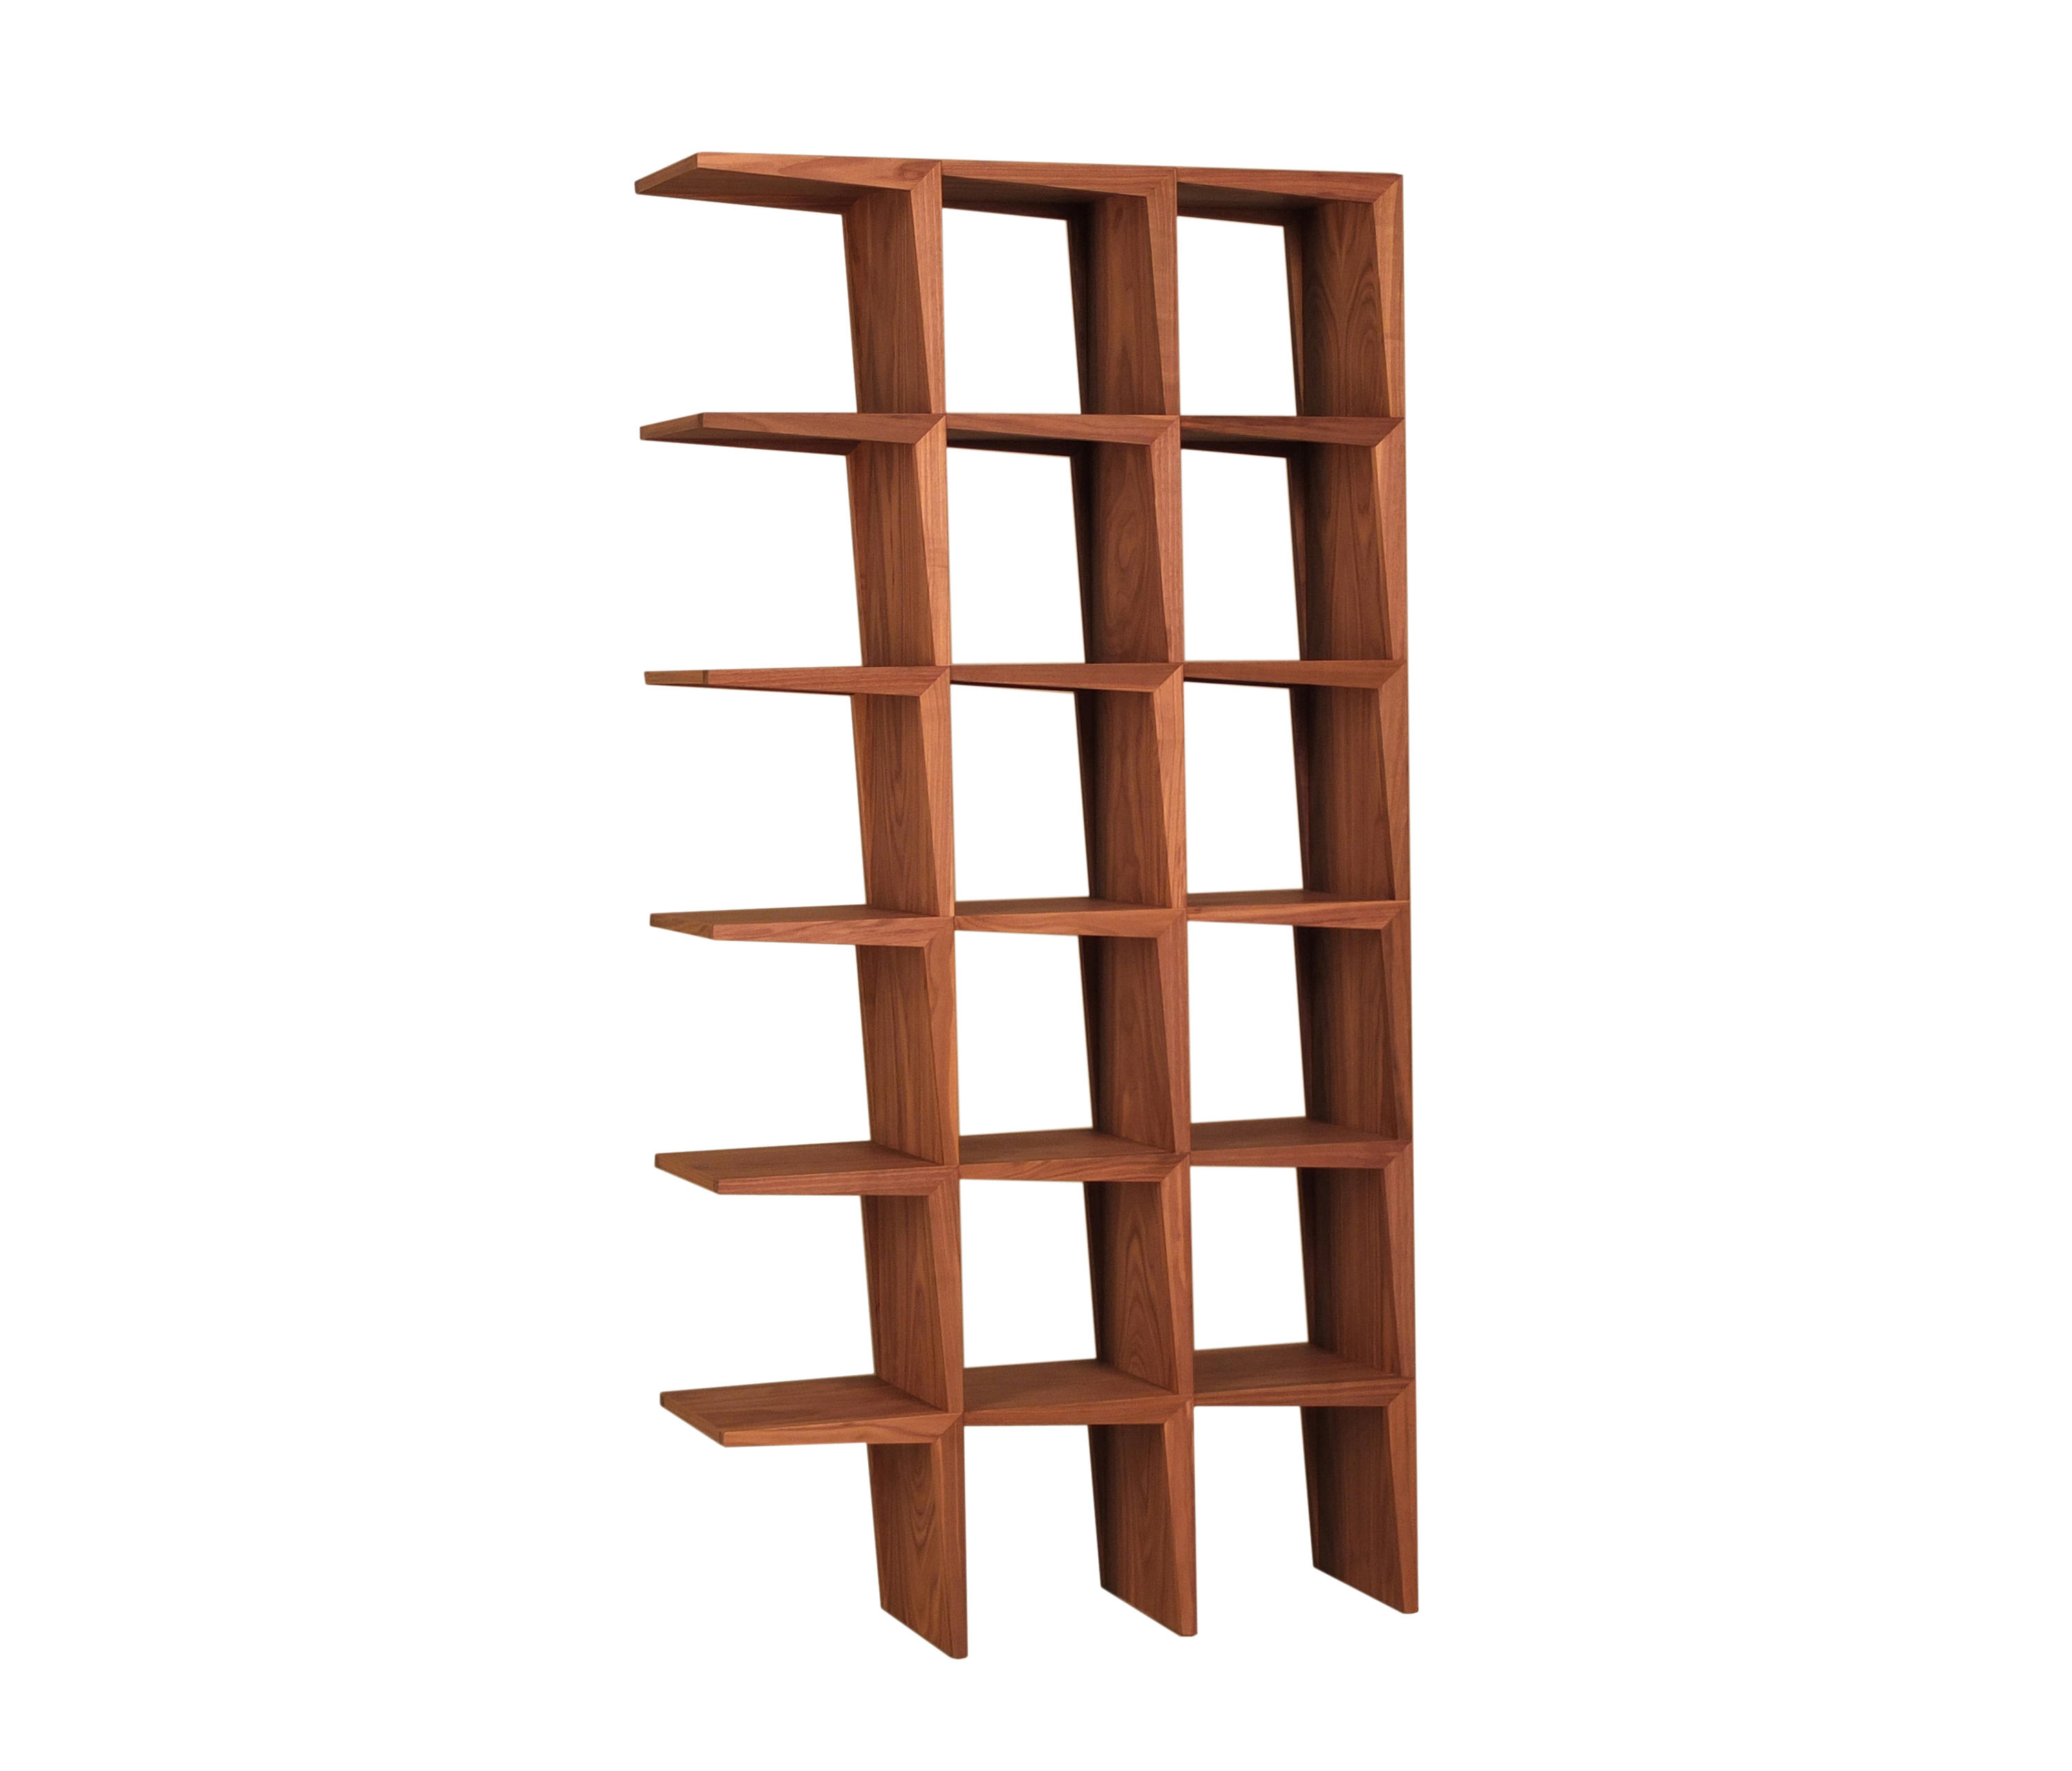 Kant Bookcase Shelving From Morelato Architonic